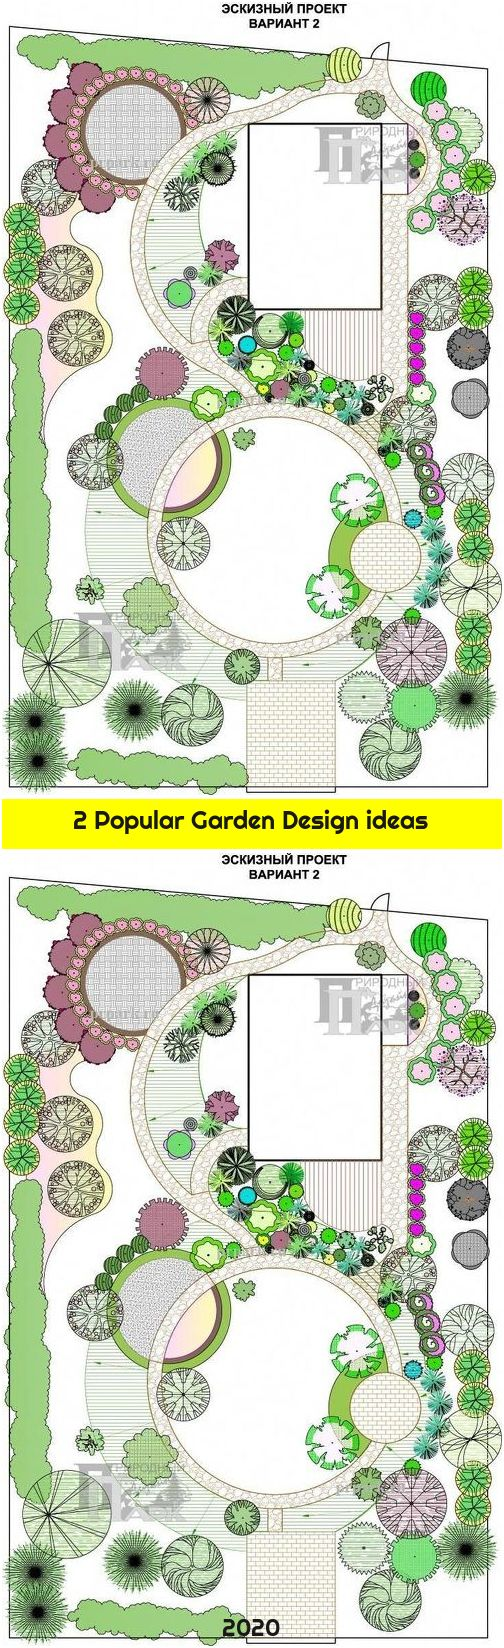 2 Popular Garden Design ideas